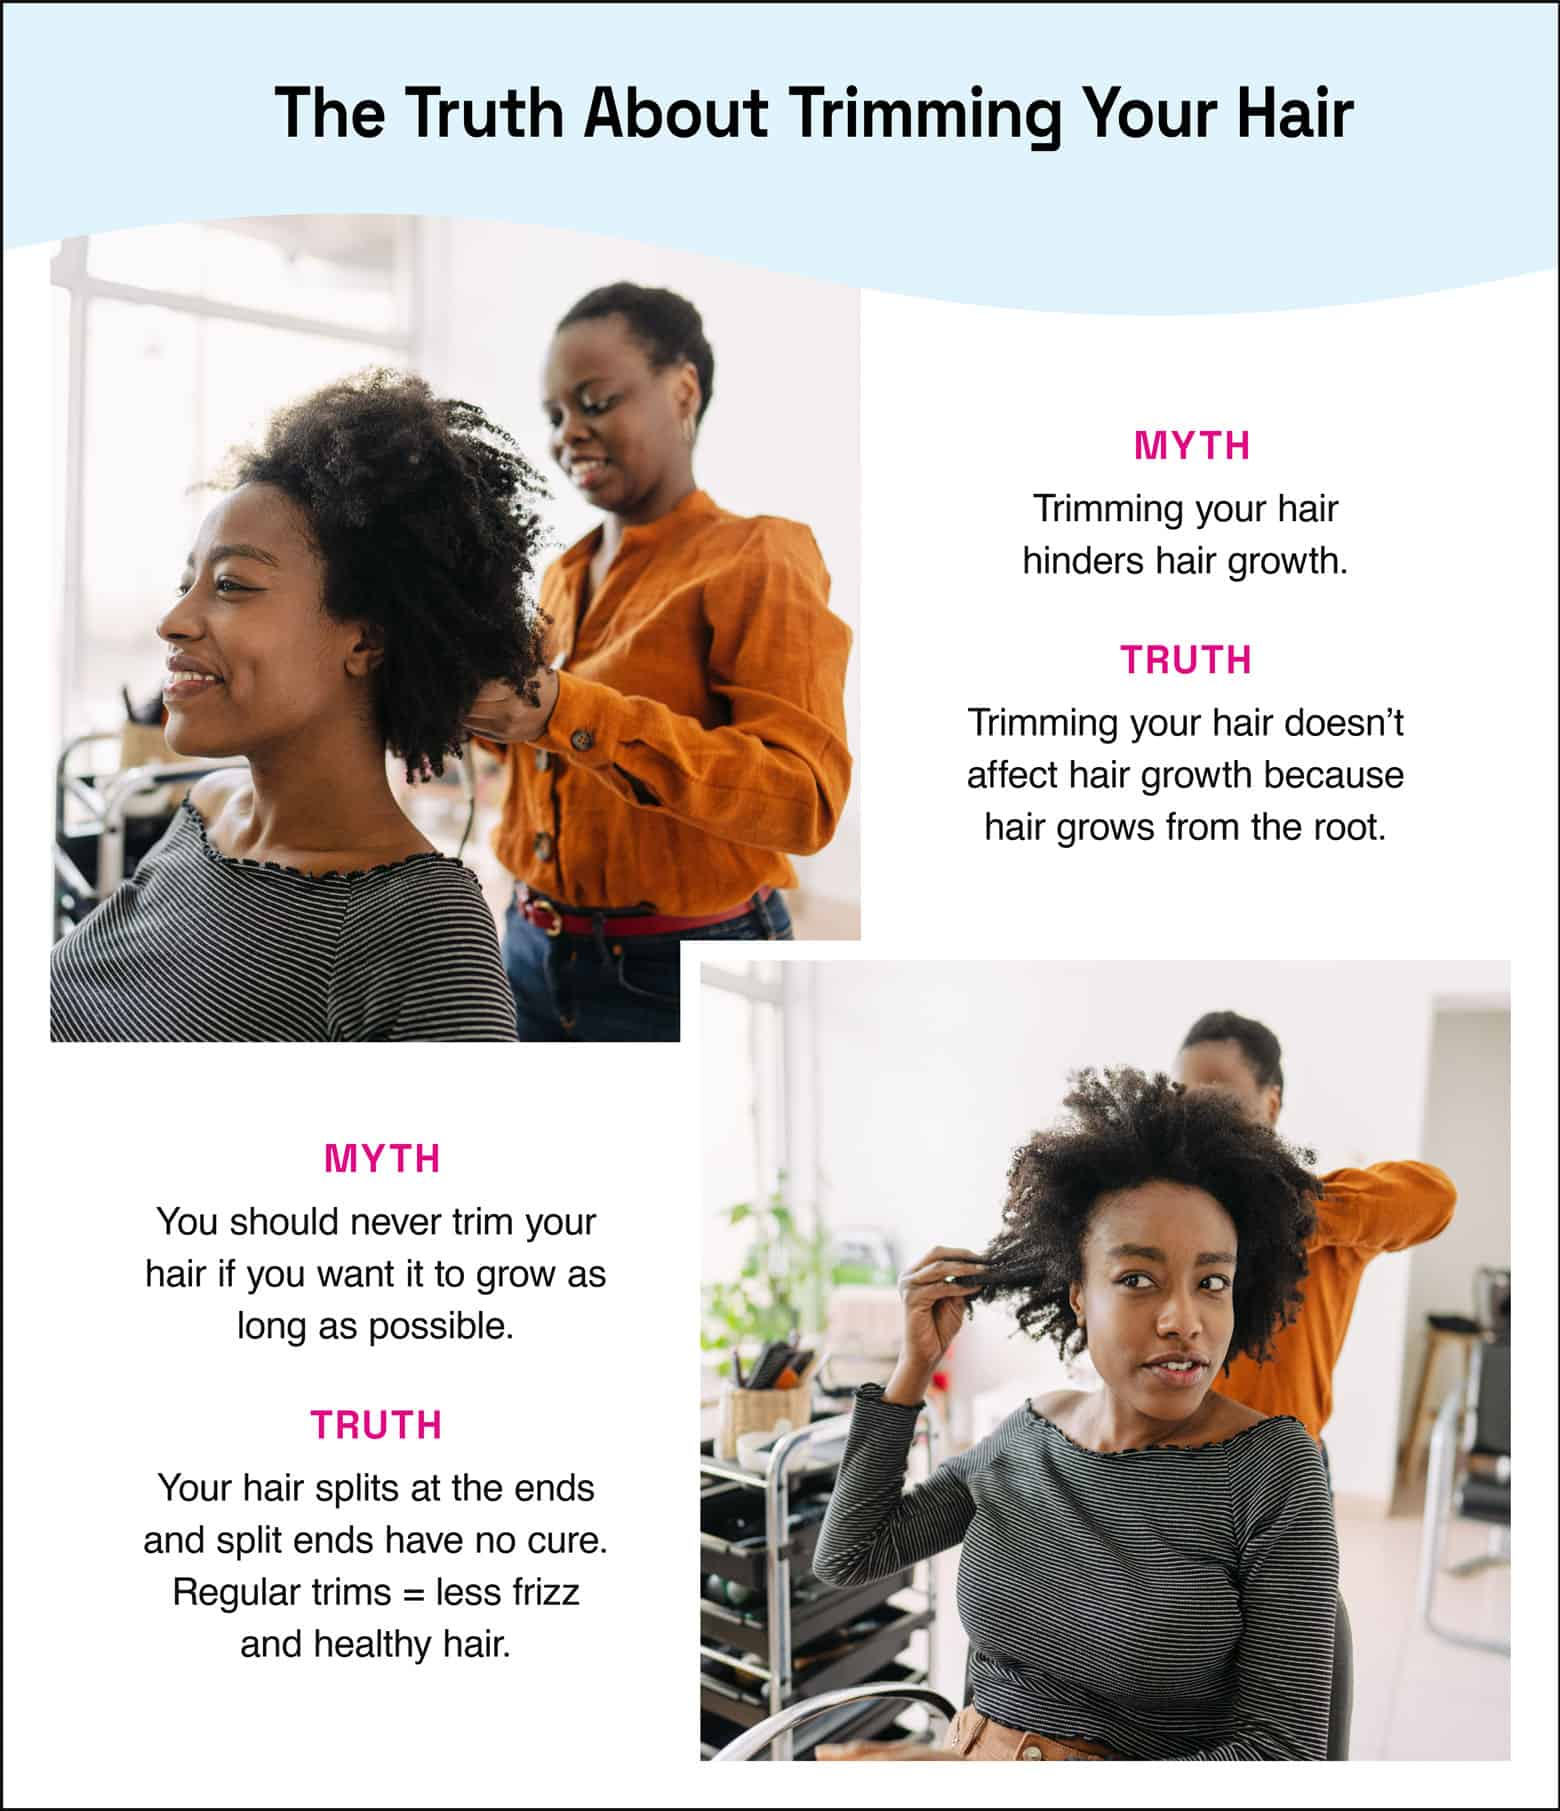 myths and truths about trimming hair